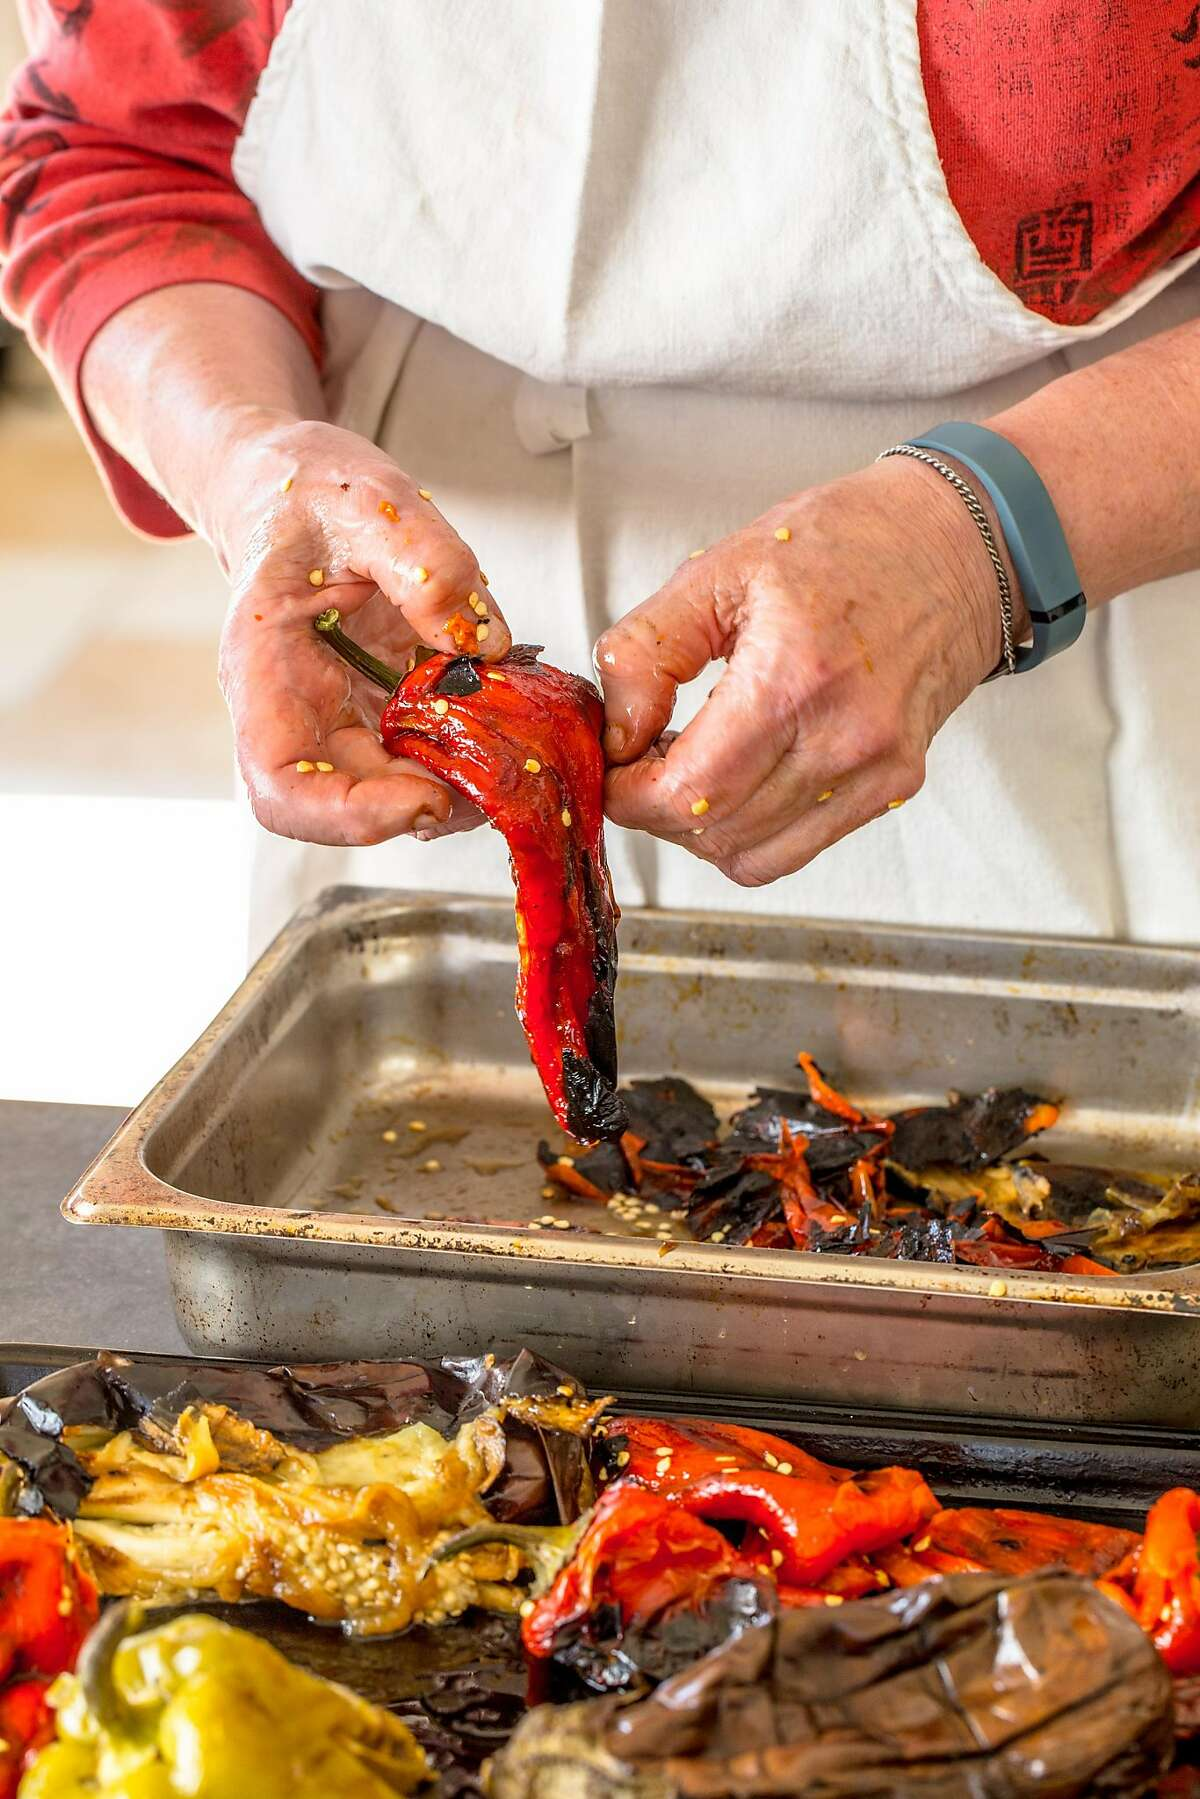 """Ajvar, a roasted pepper and eggplant spread, from """"Unforgettable: The Bold Flavors of Paula Wolfert's Renegade Life"""" by Emily Kaiser Thelin (Mortar & Pestle; 336 pages; $35)"""